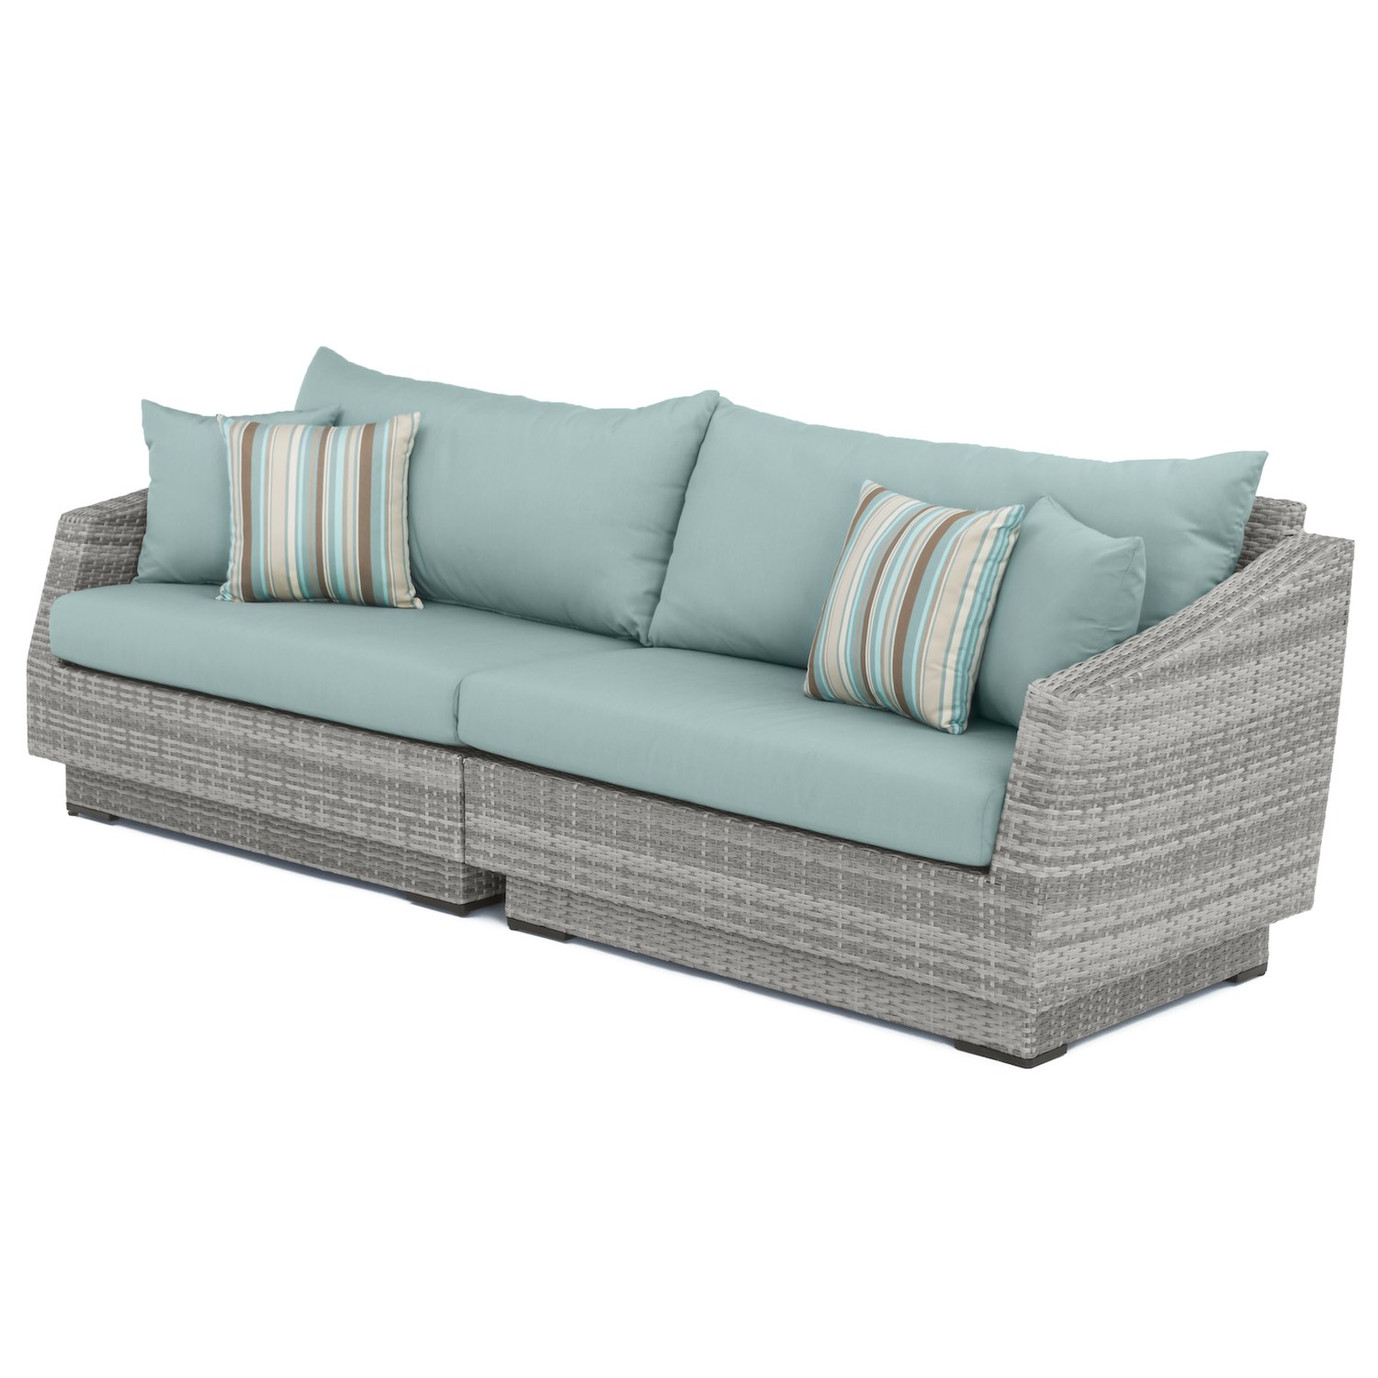 Cannes™ Sofa - Bliss Blue